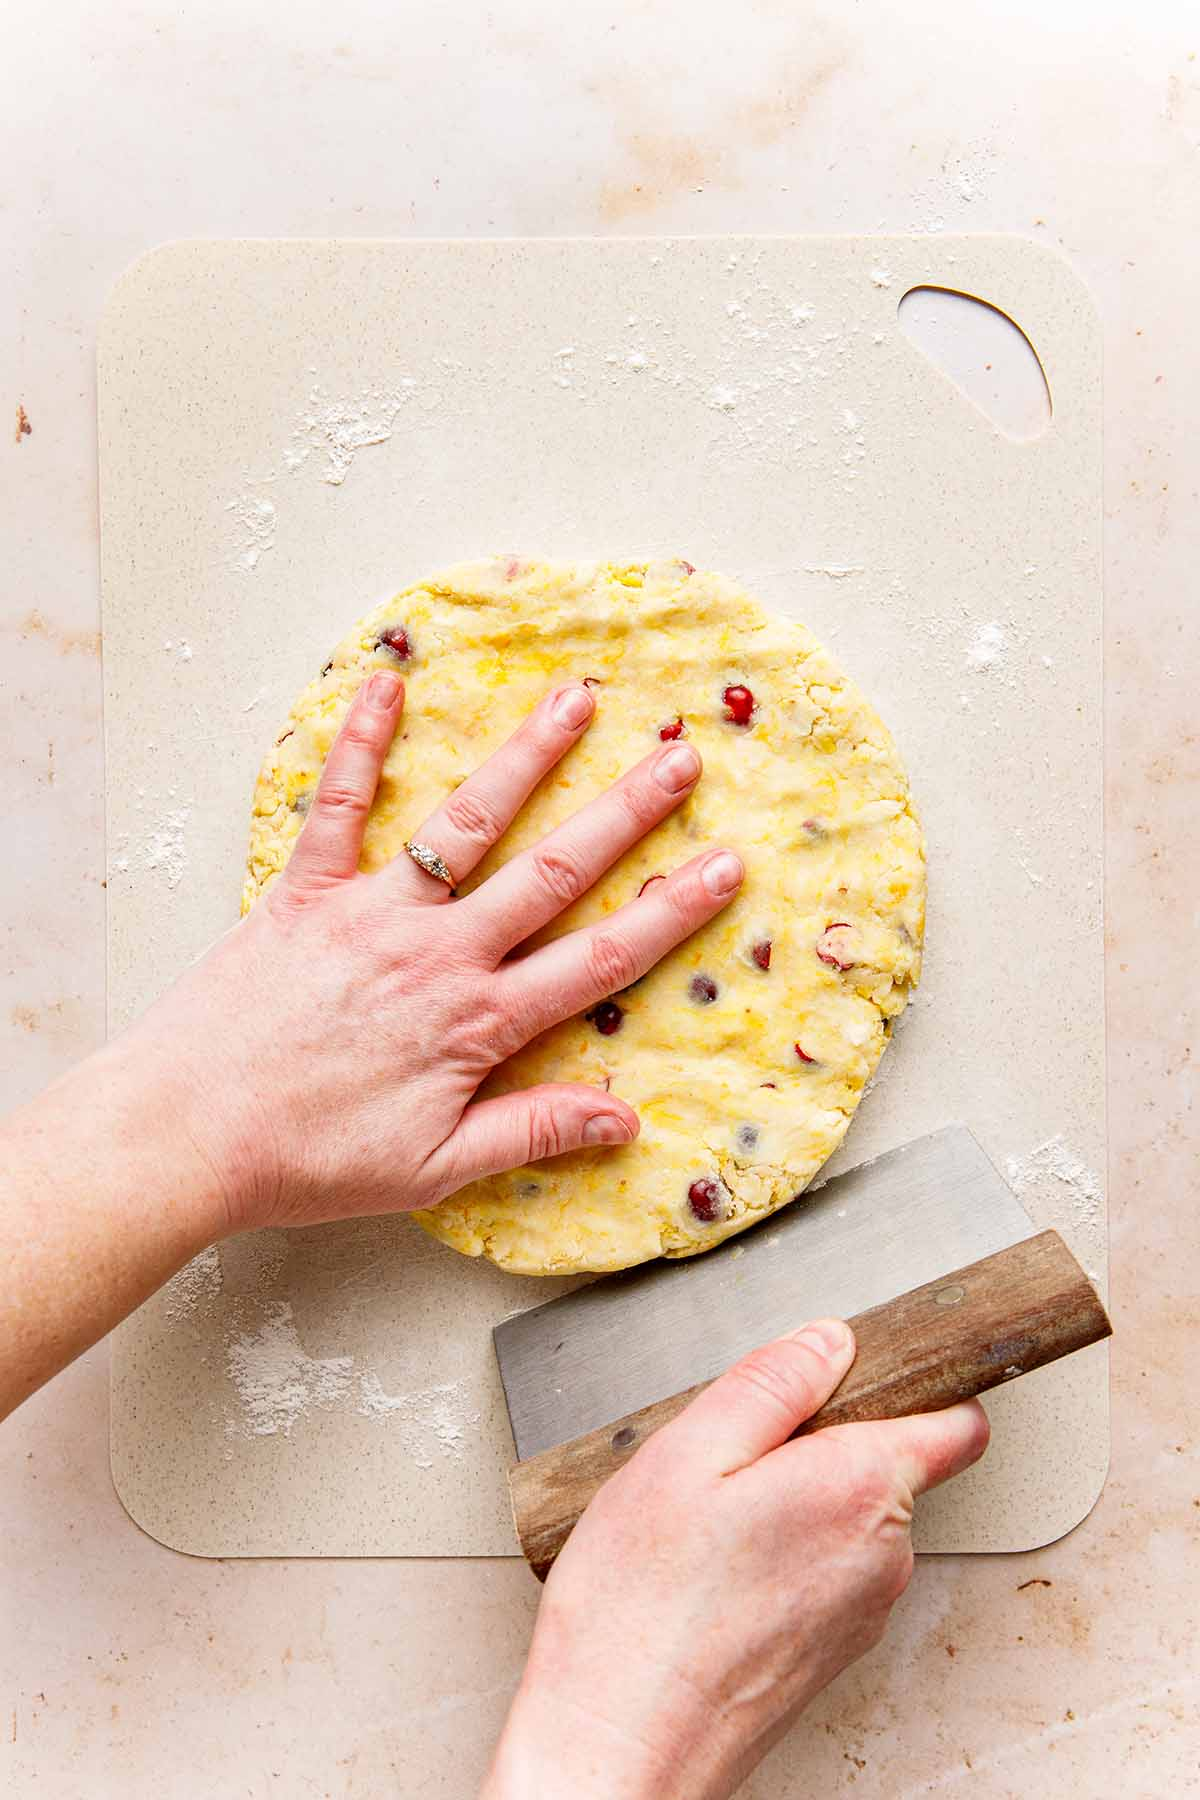 A hand using a bench scraper to smooth the edges of a disc of dough for orange cranberry scones.